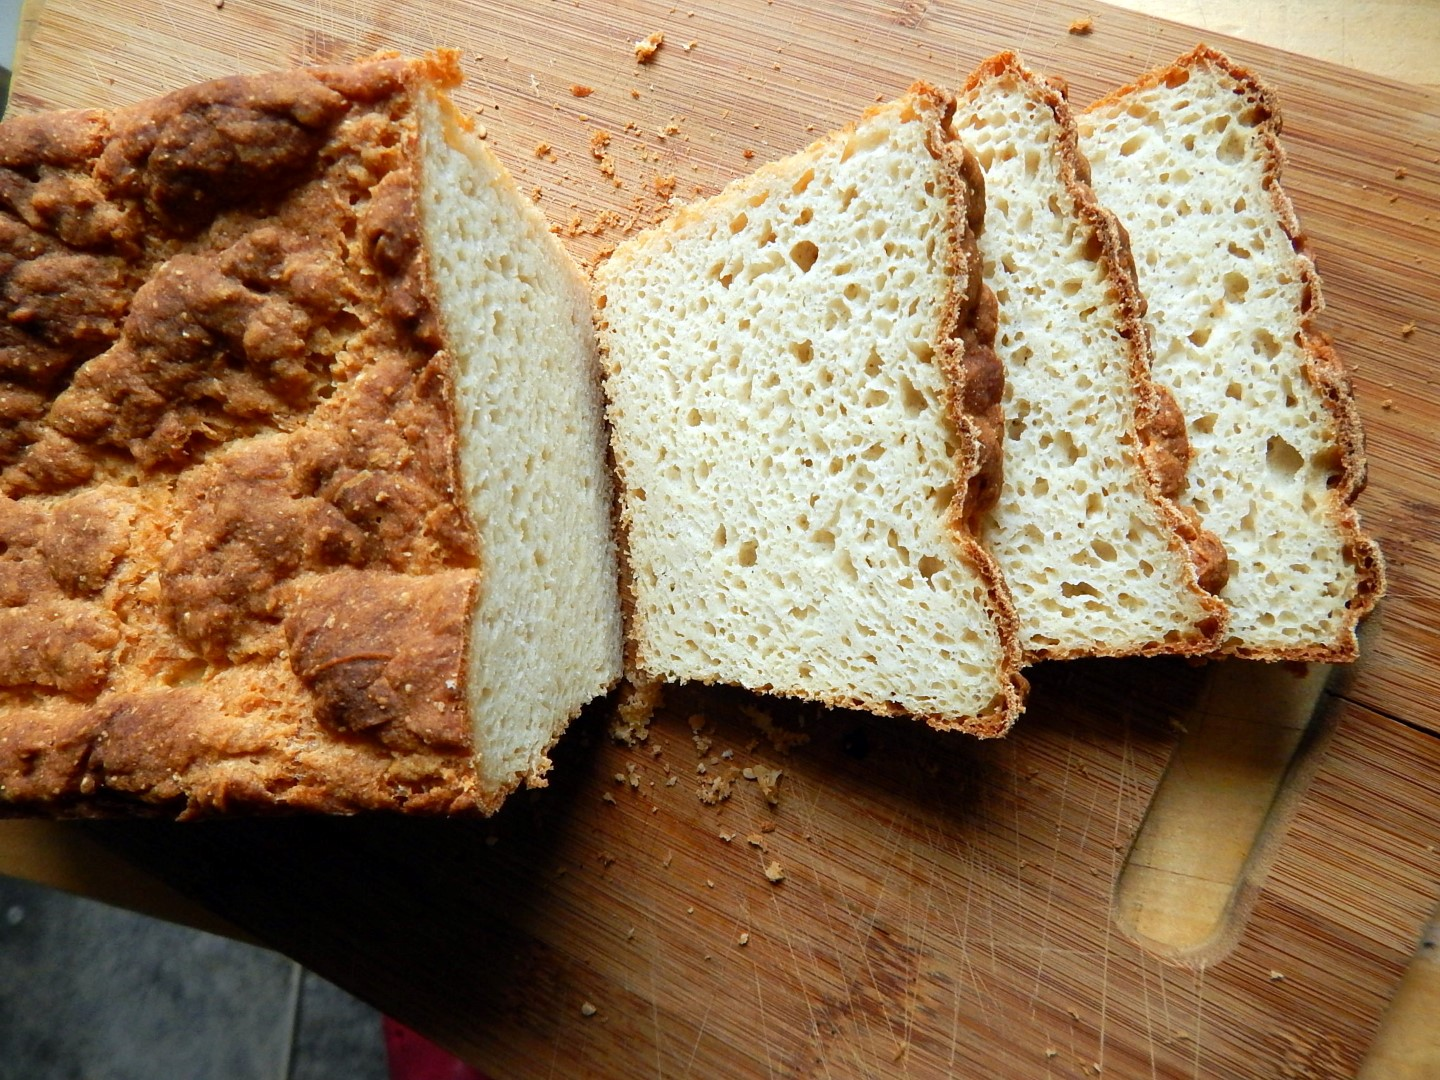 Gluten free bread with white flours